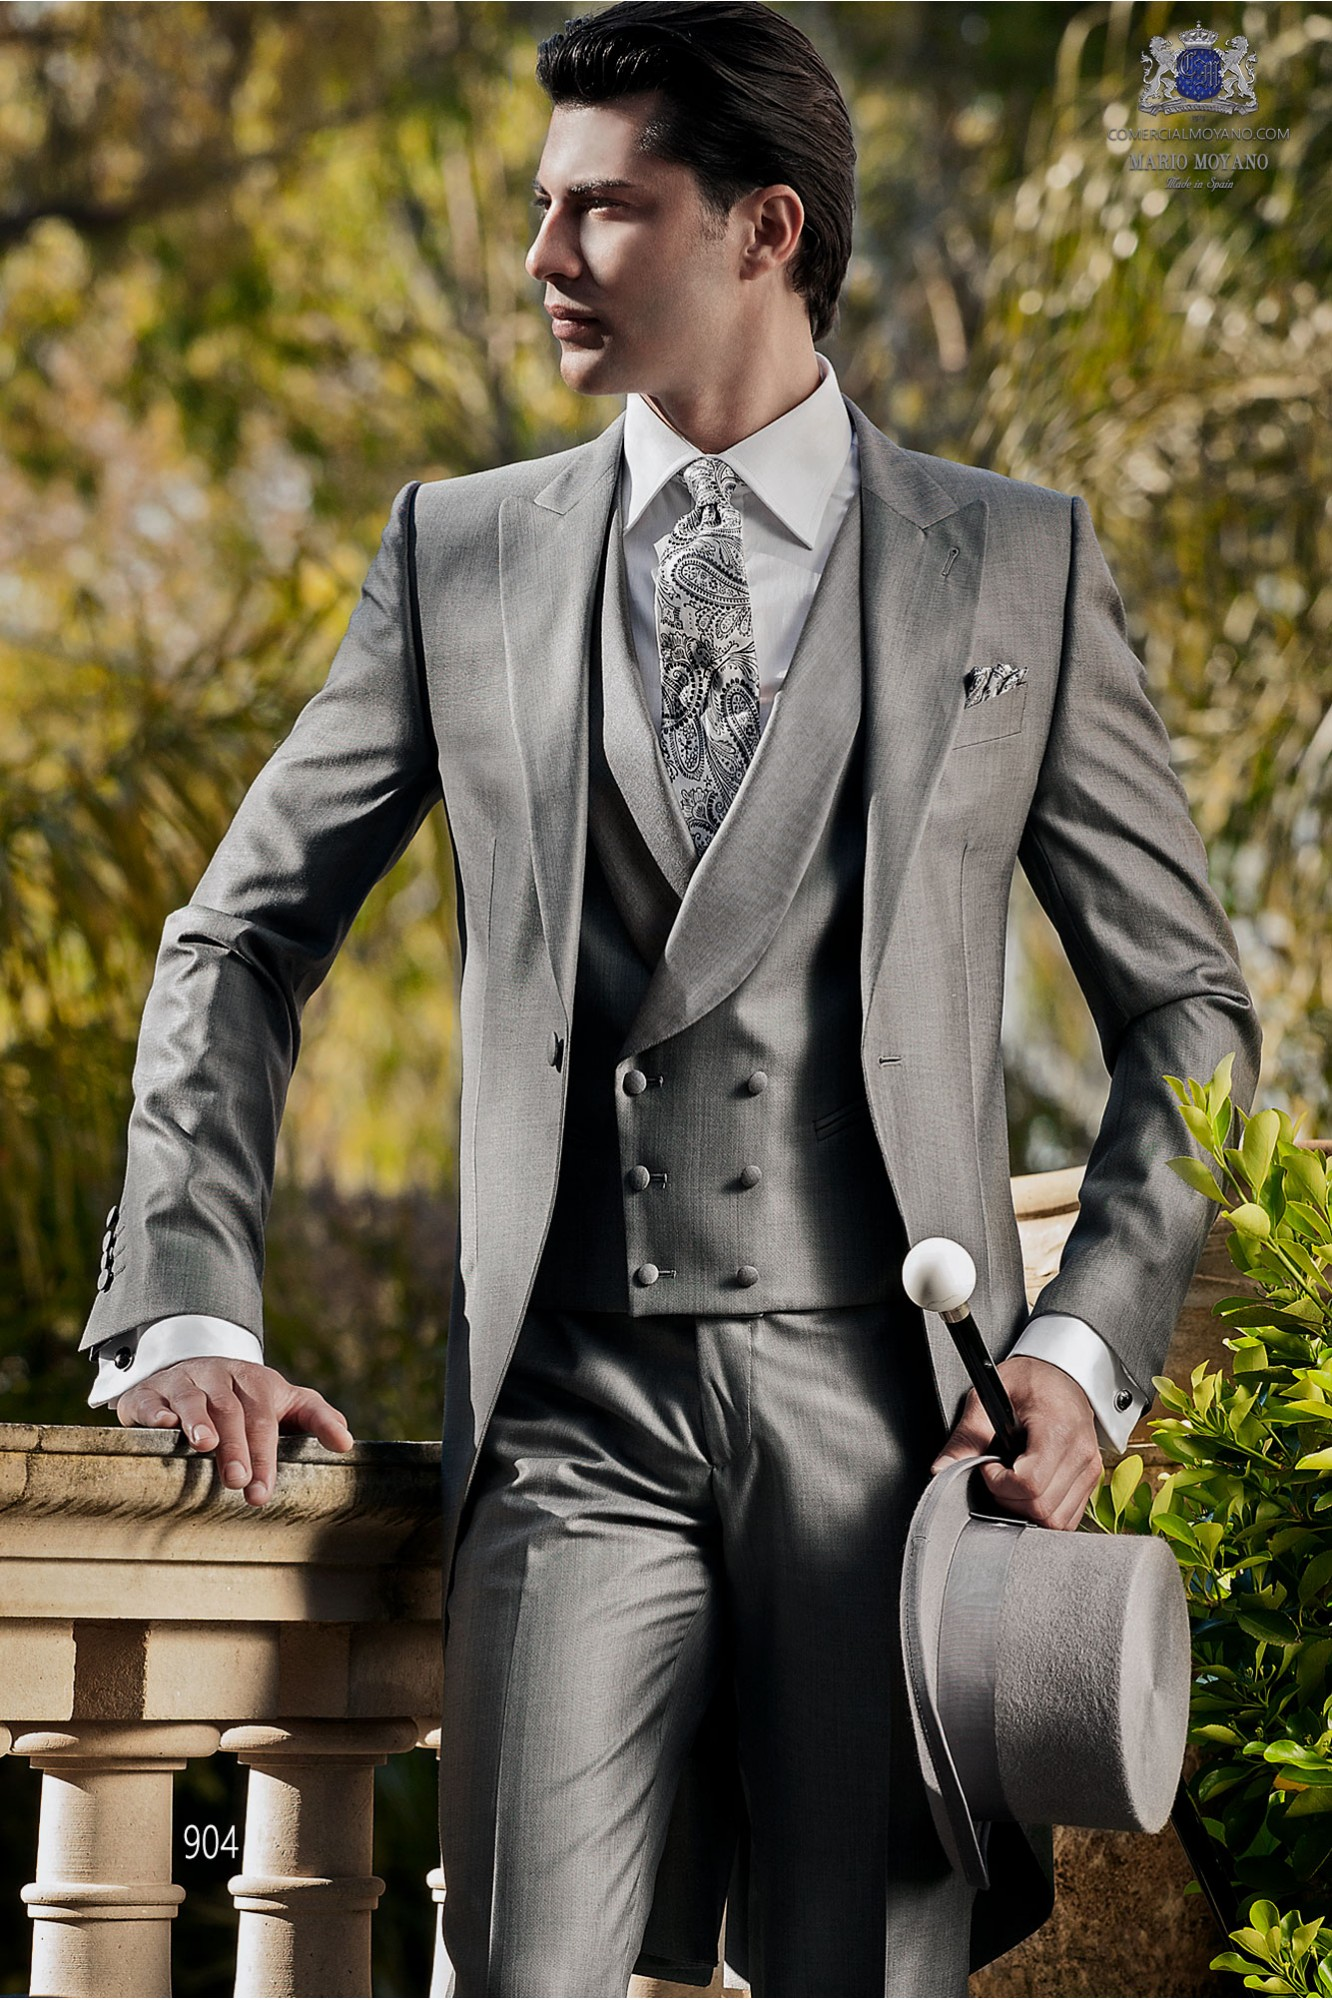 Italian bespoke gray wedding morning suit 904 Ottavio Nuccio Gala.